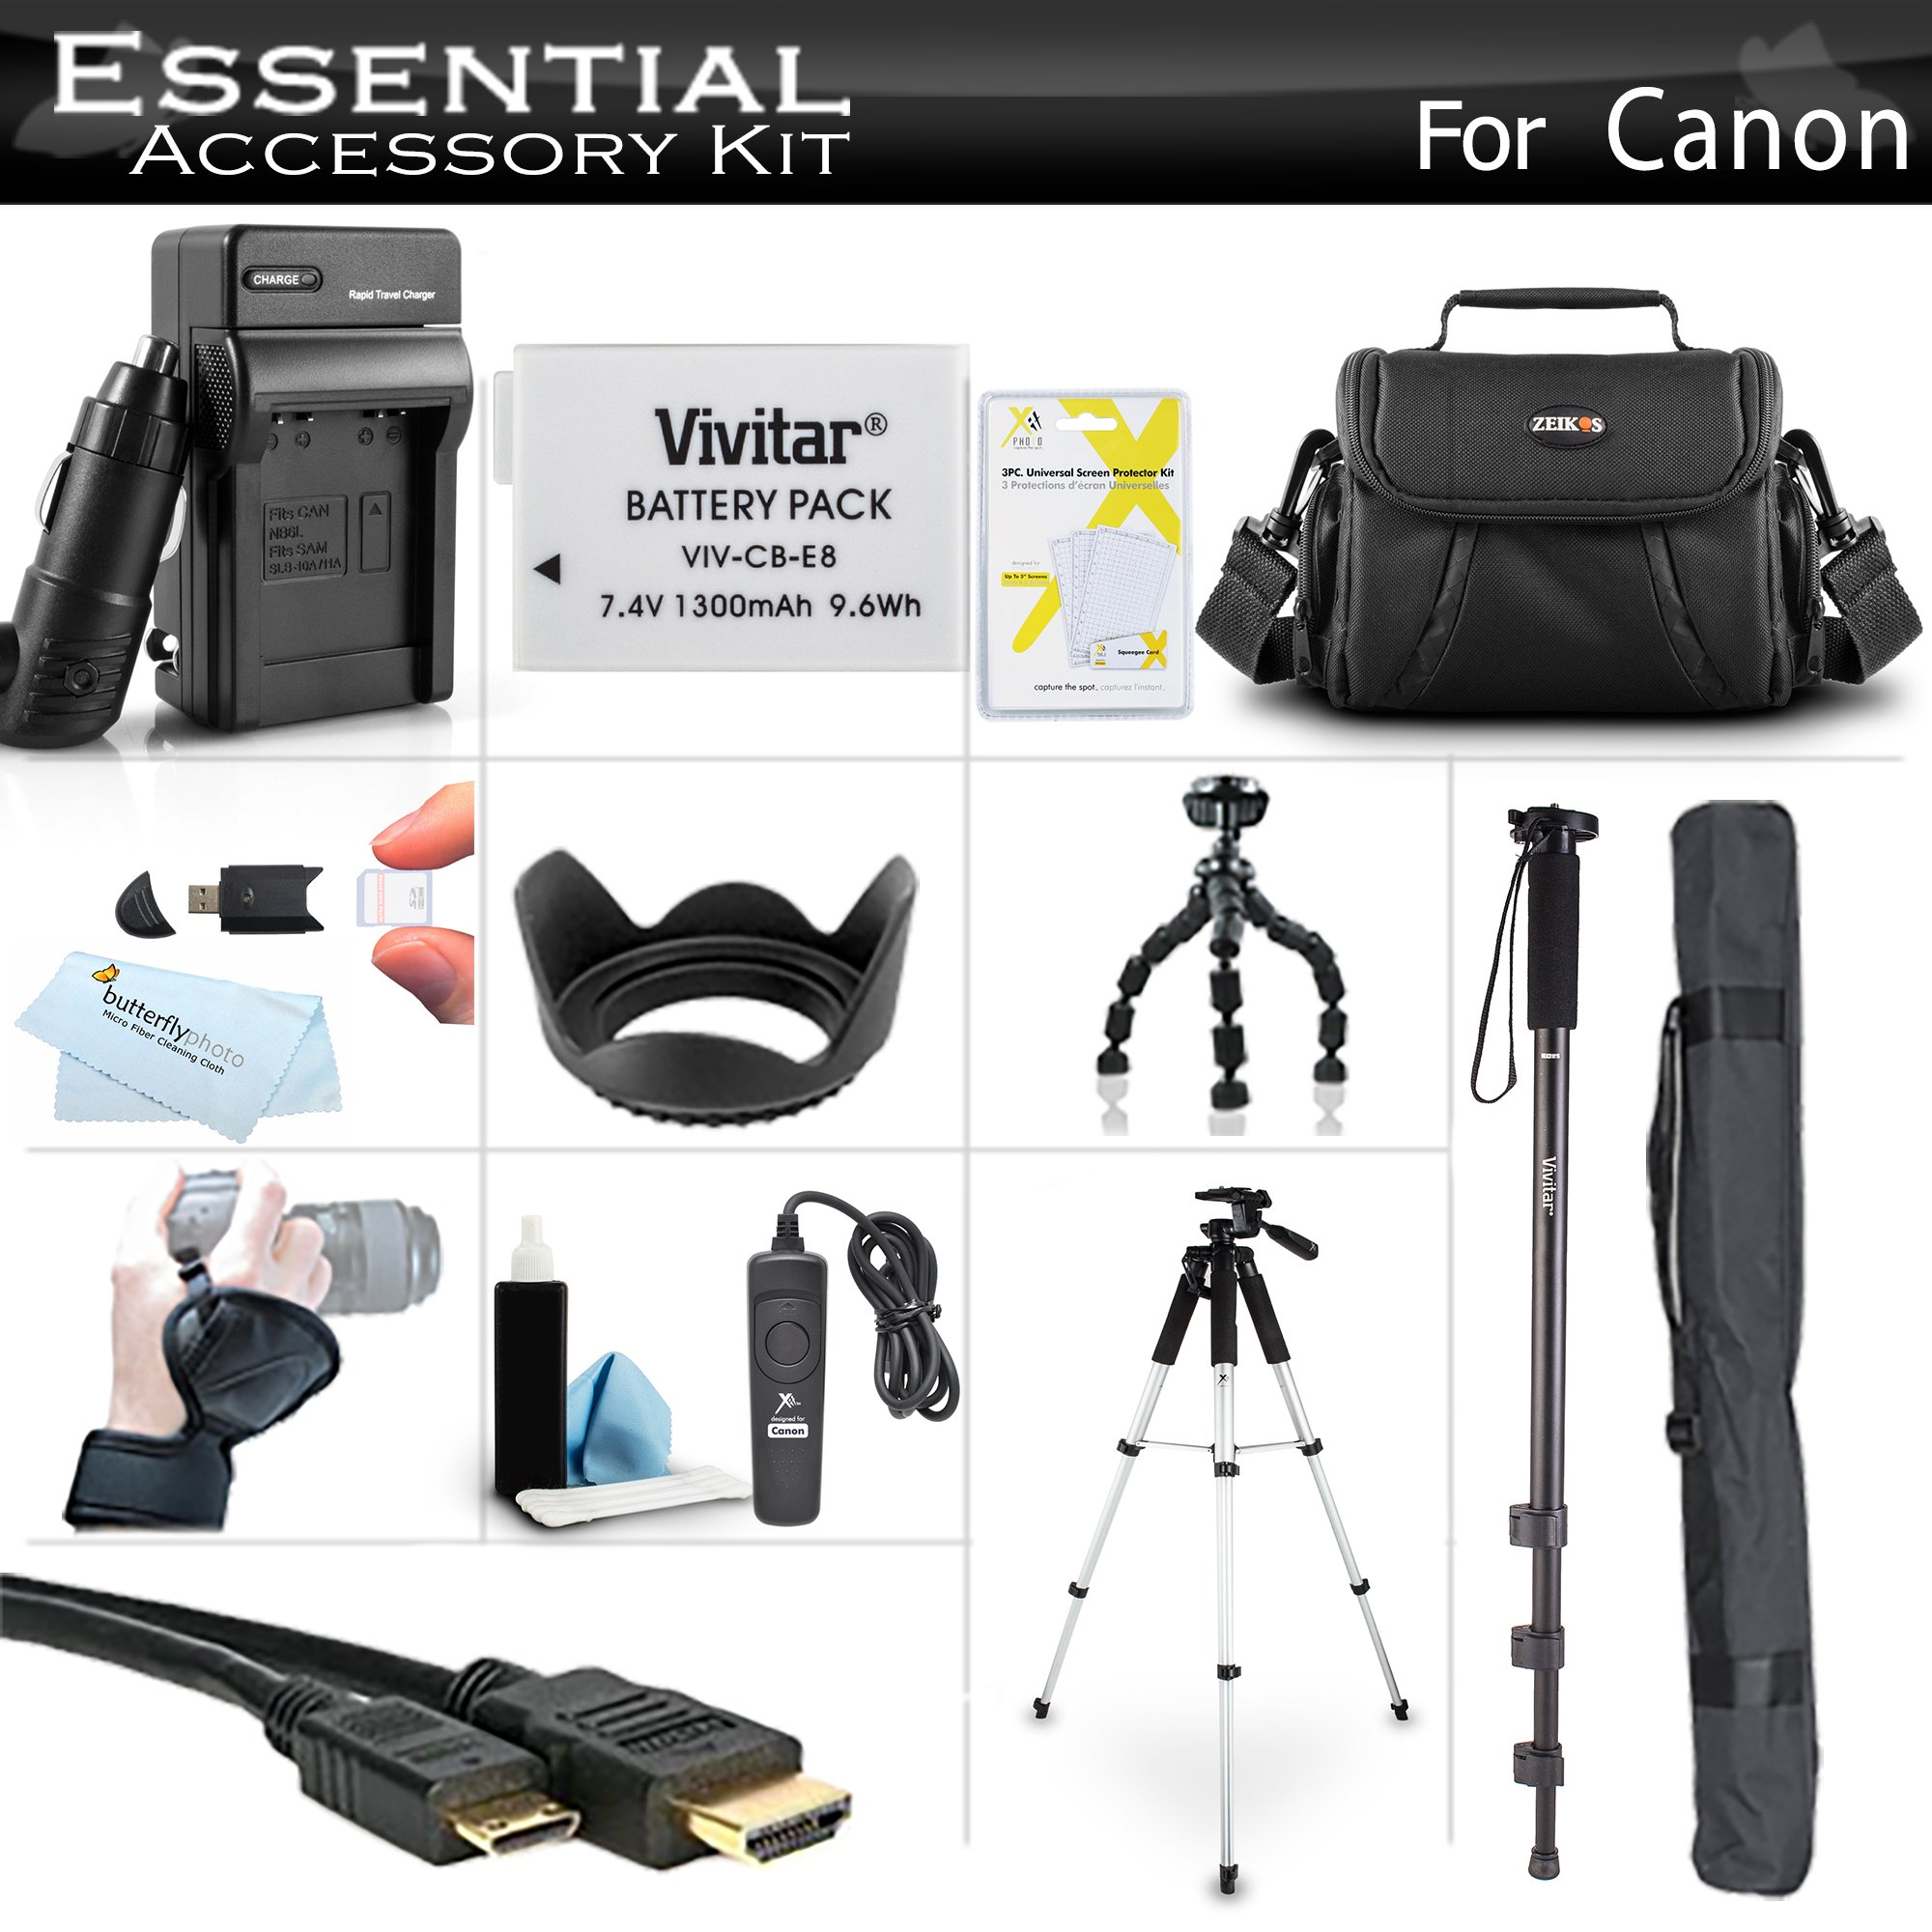 Essential Accessory Kit for Canon EOS Rebel T5i, T4i, T3i Digital SLR Camera Includes Replacement LP-E8 Battery + Charger + Case + Remote Switch + 57 Tripod + 10 Flexible Tripod + 67 Monopod + More